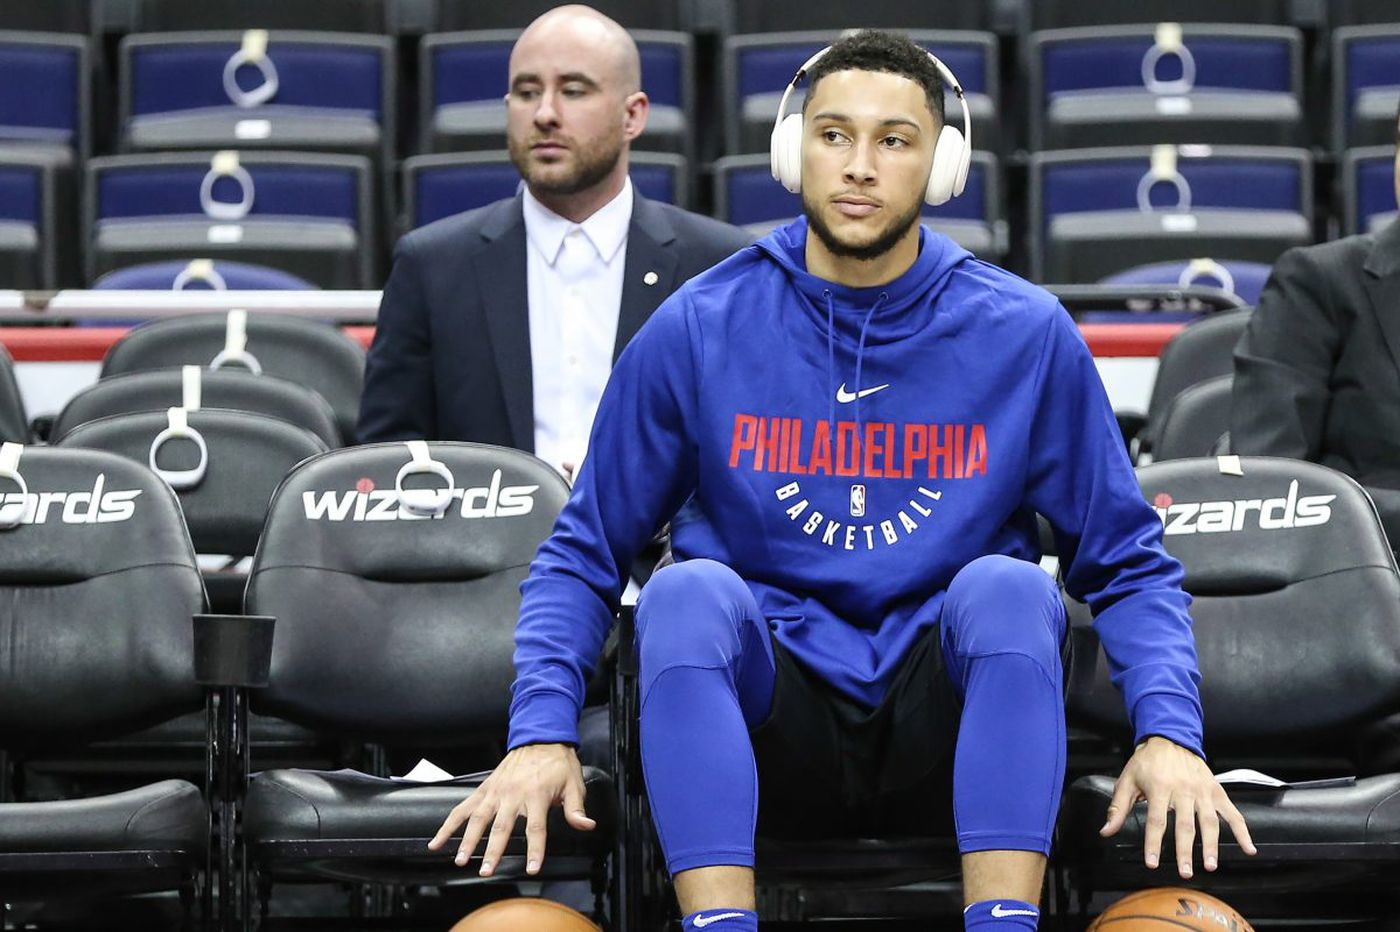 Sixers chat replay: Keith Pompey talks Ben Simmons, Justin Anderson and more